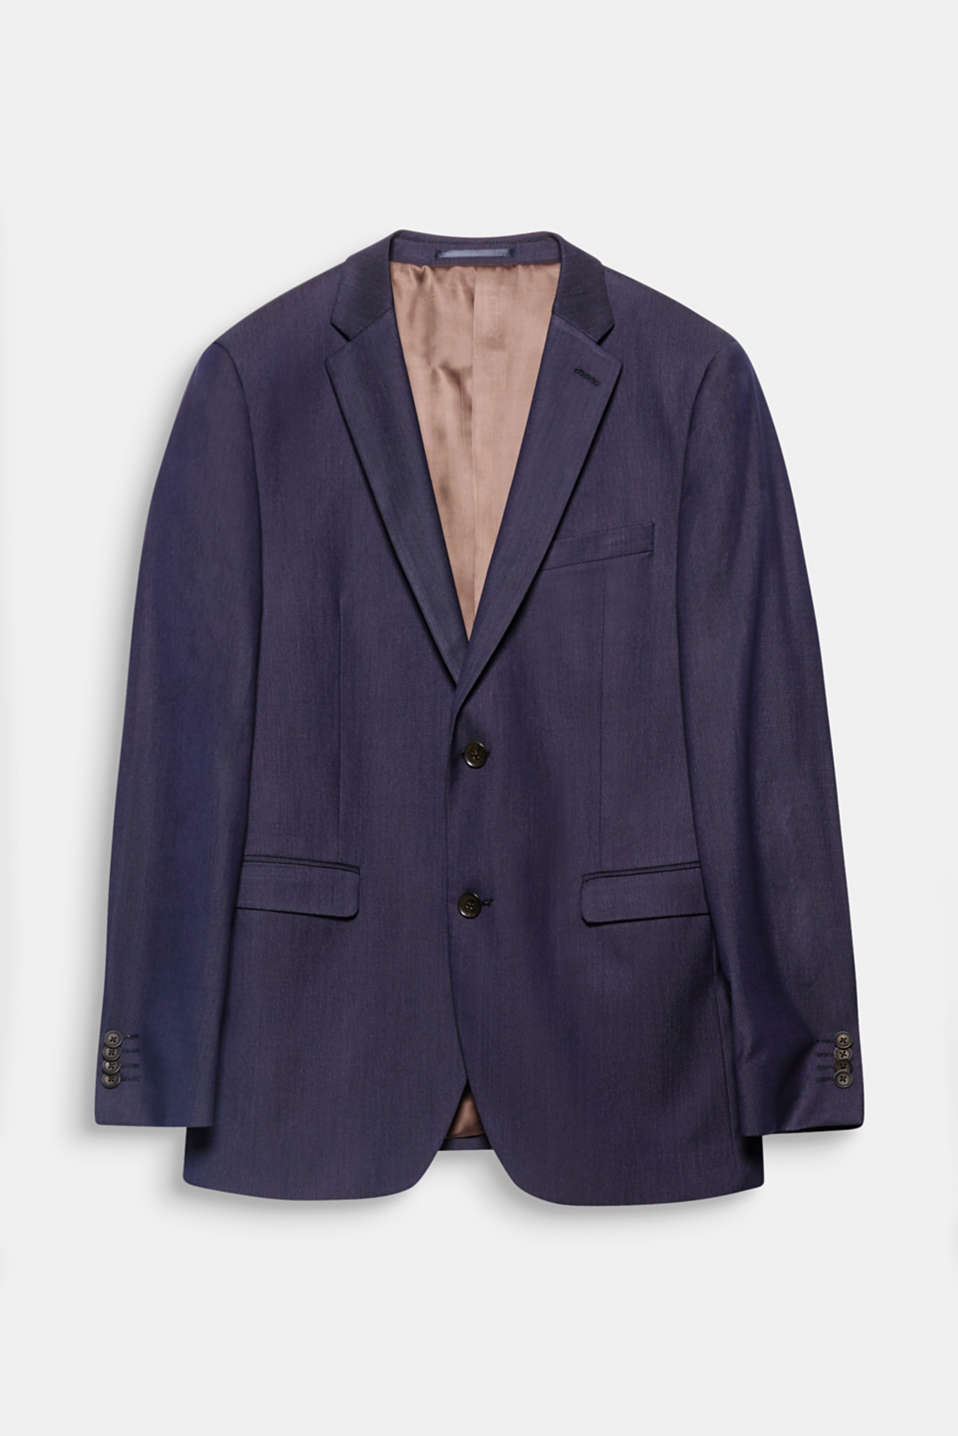 Suit up! The fine melange two-tone look gives this jacket an elegant appearance.